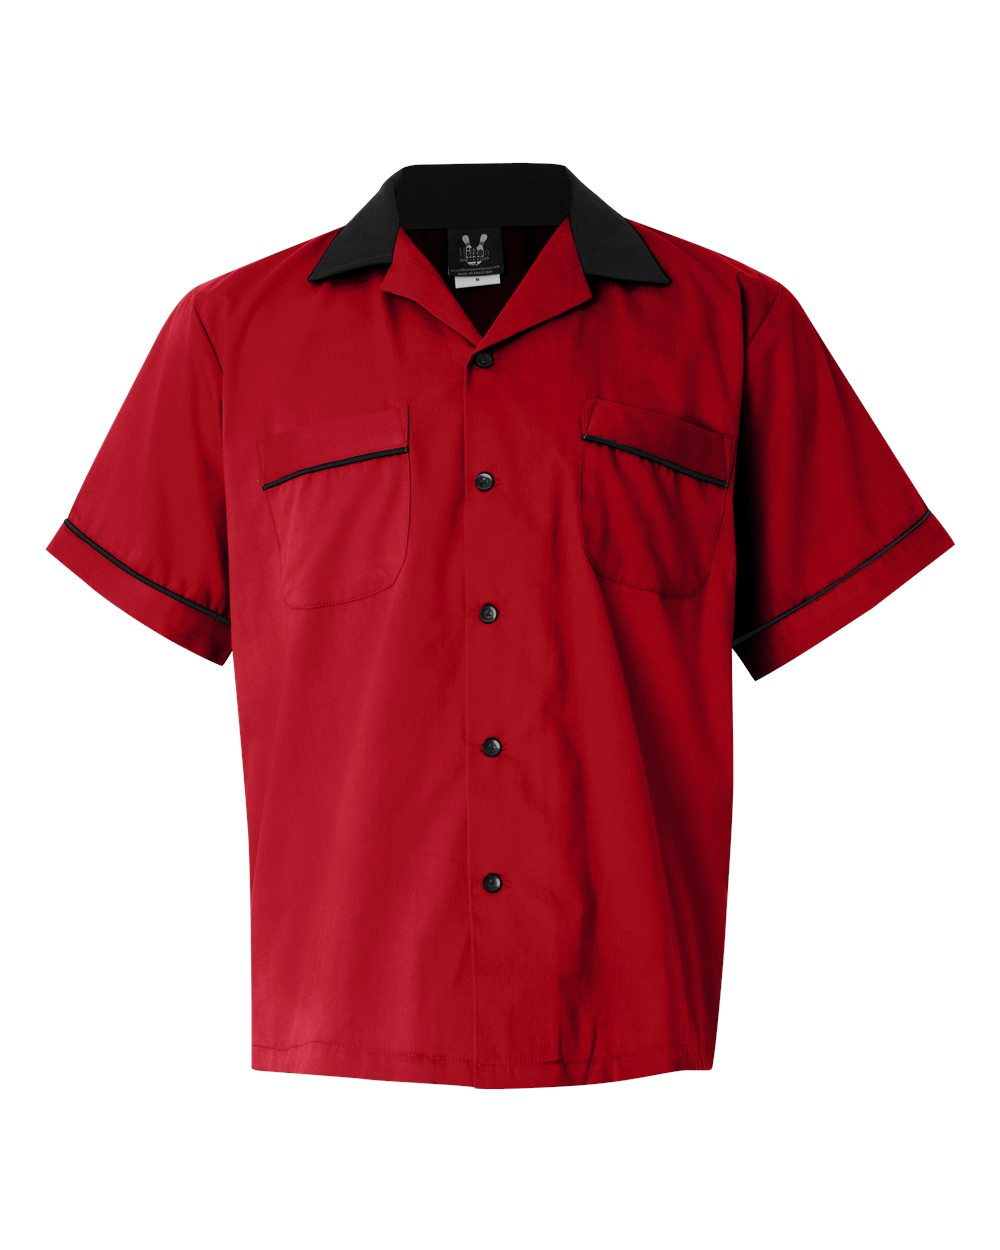 1950s Style Mens Shirts Classic Bowler 2.0 Bowling Shirt - Red  Black $39.95 AT vintagedancer.com